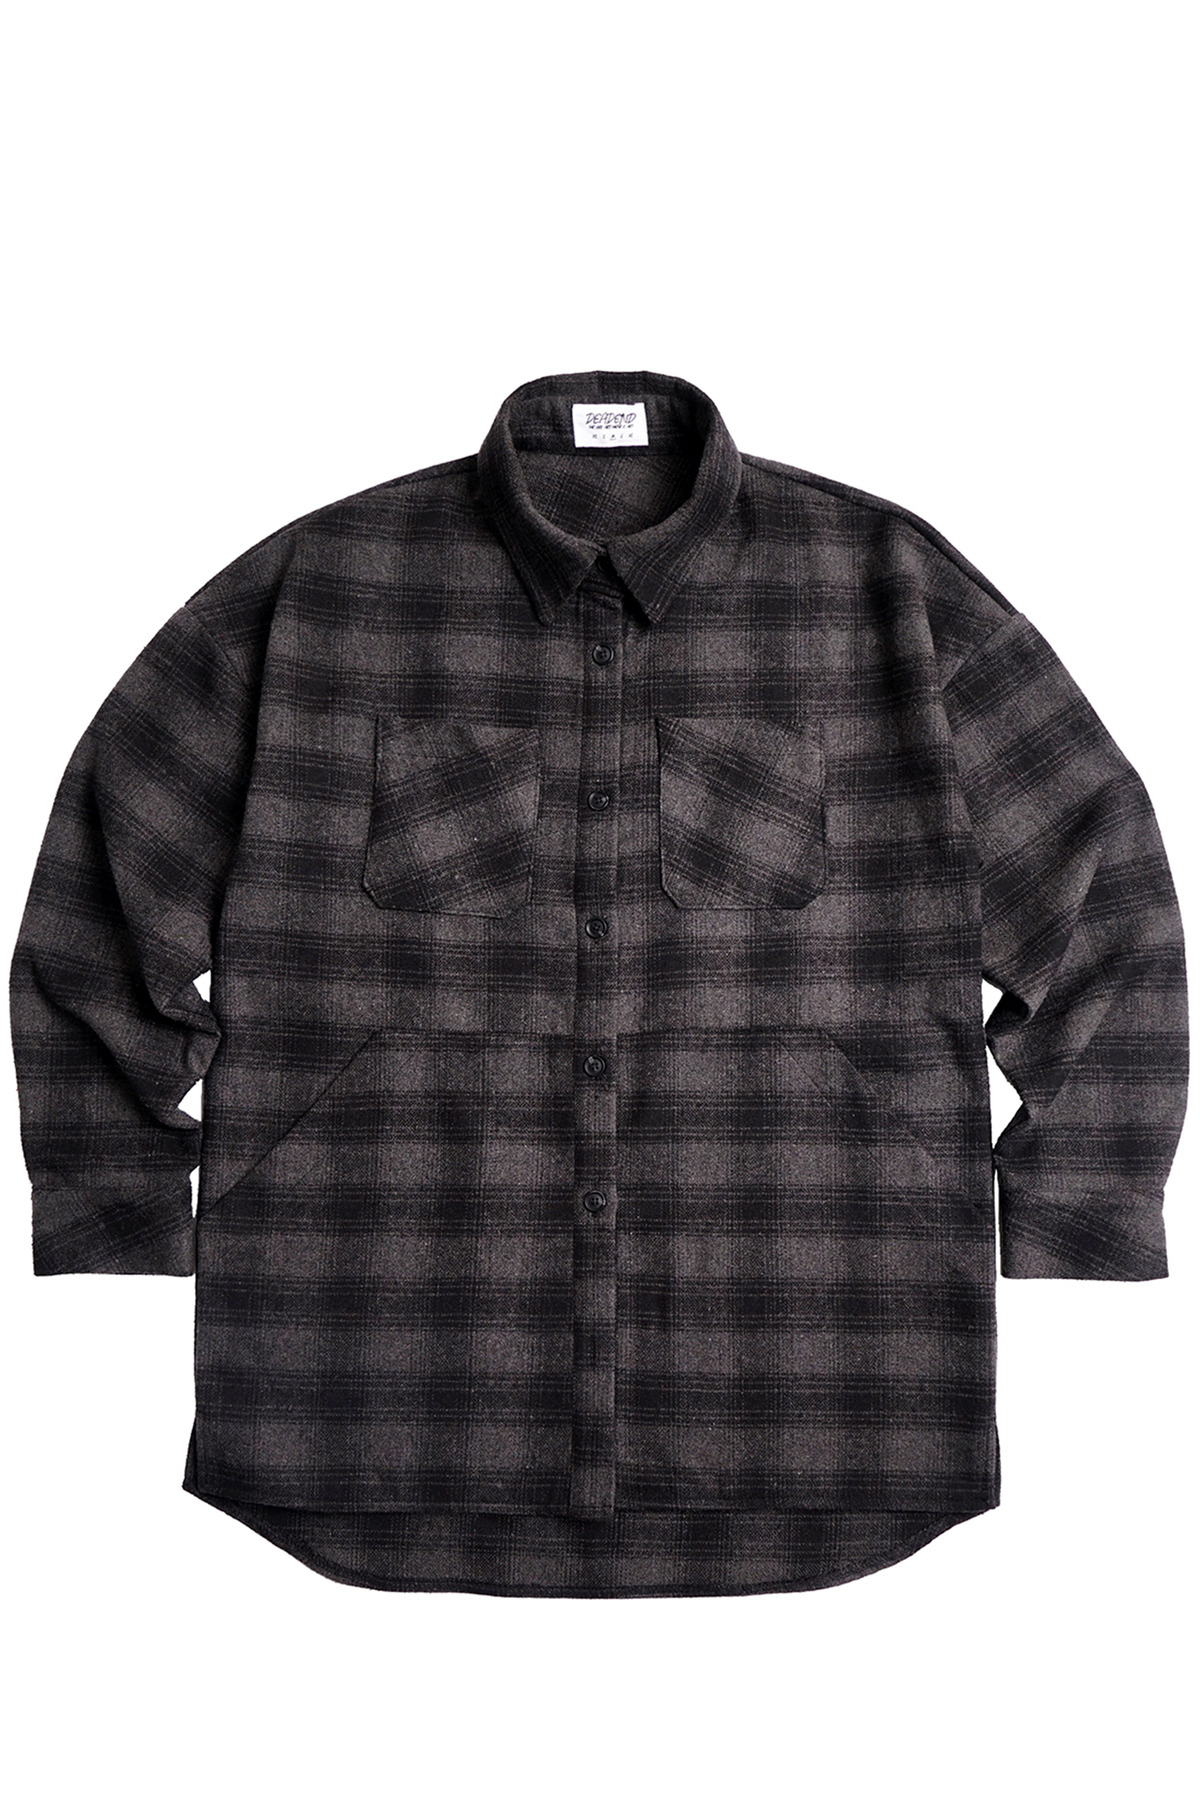 BLACK FLANNEL POCKET SHIRTS